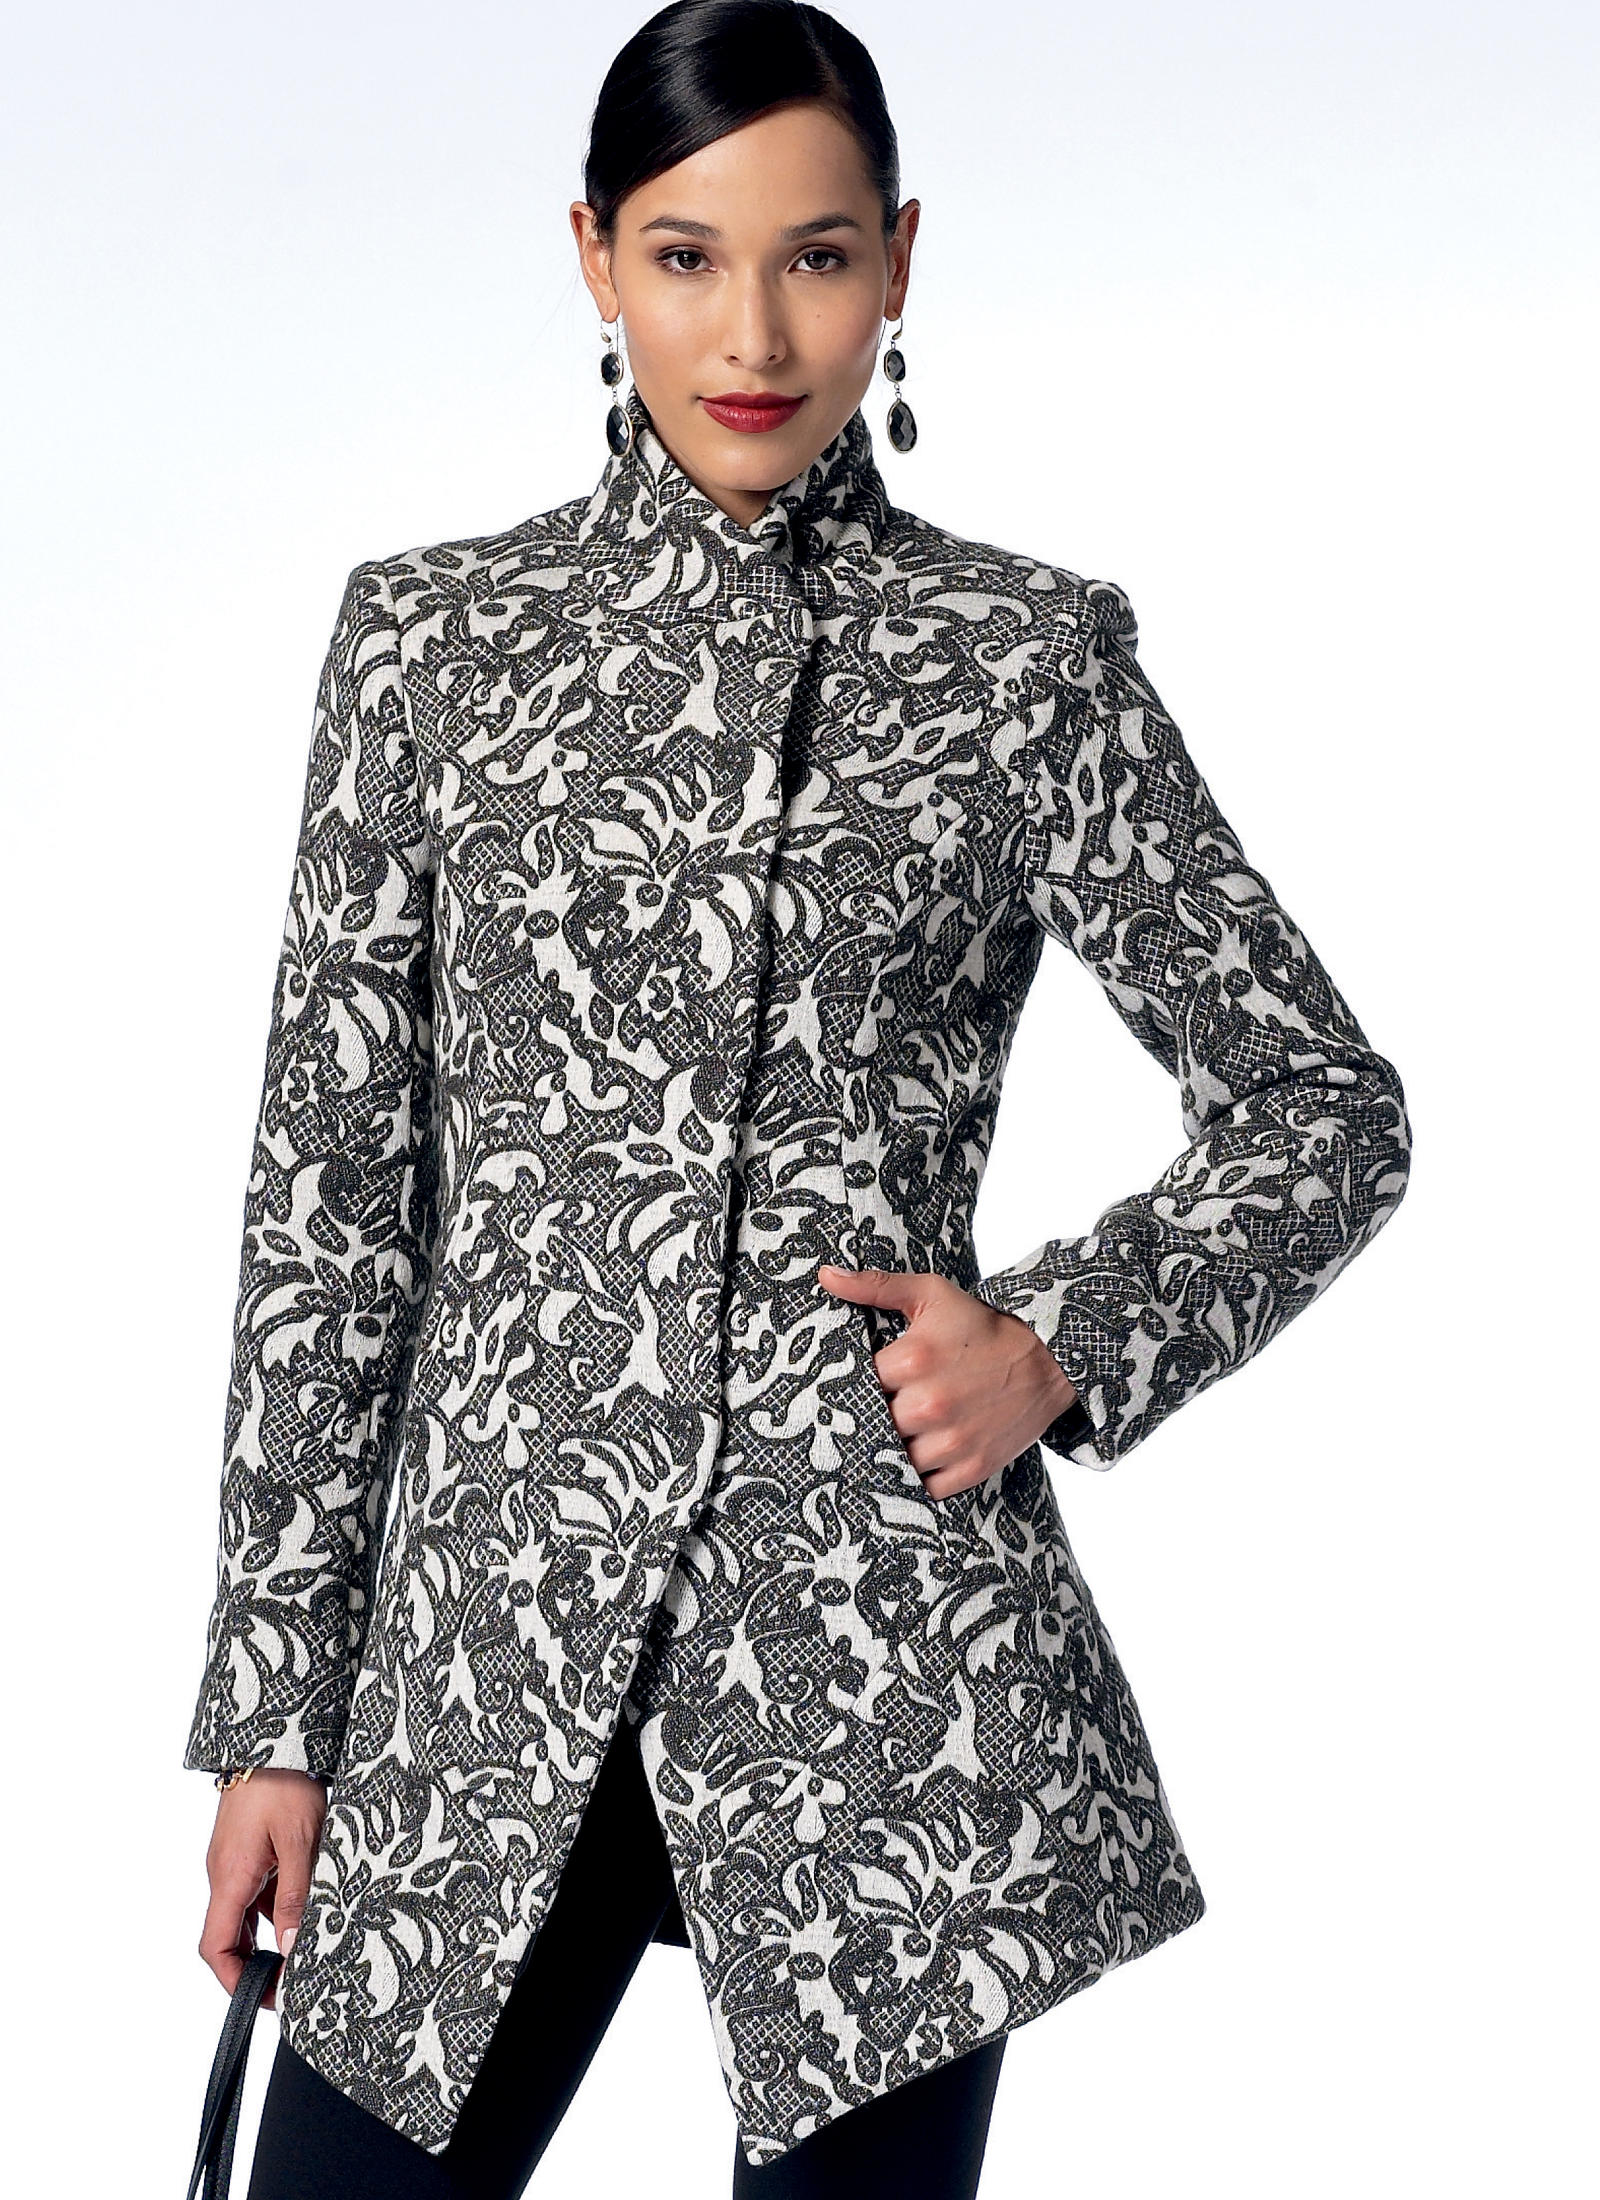 Vogue Patterns 9212 MISSES' SEAMED AND COLLARED JACKETS